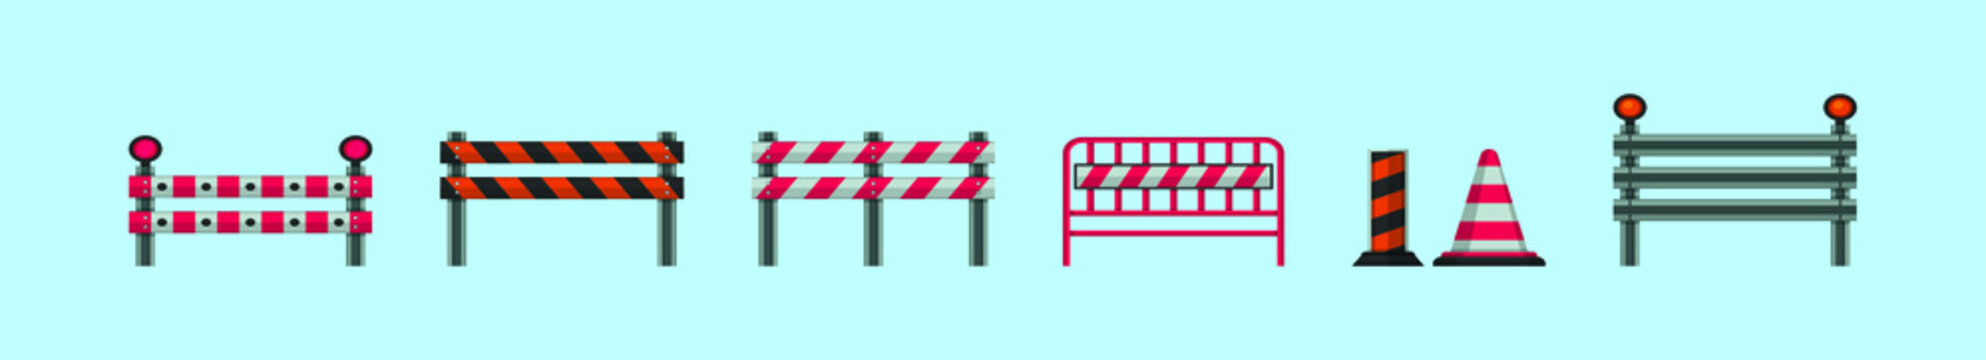 set of guardrail cartoon icon design template with various models. vector illustration isolated on blue background